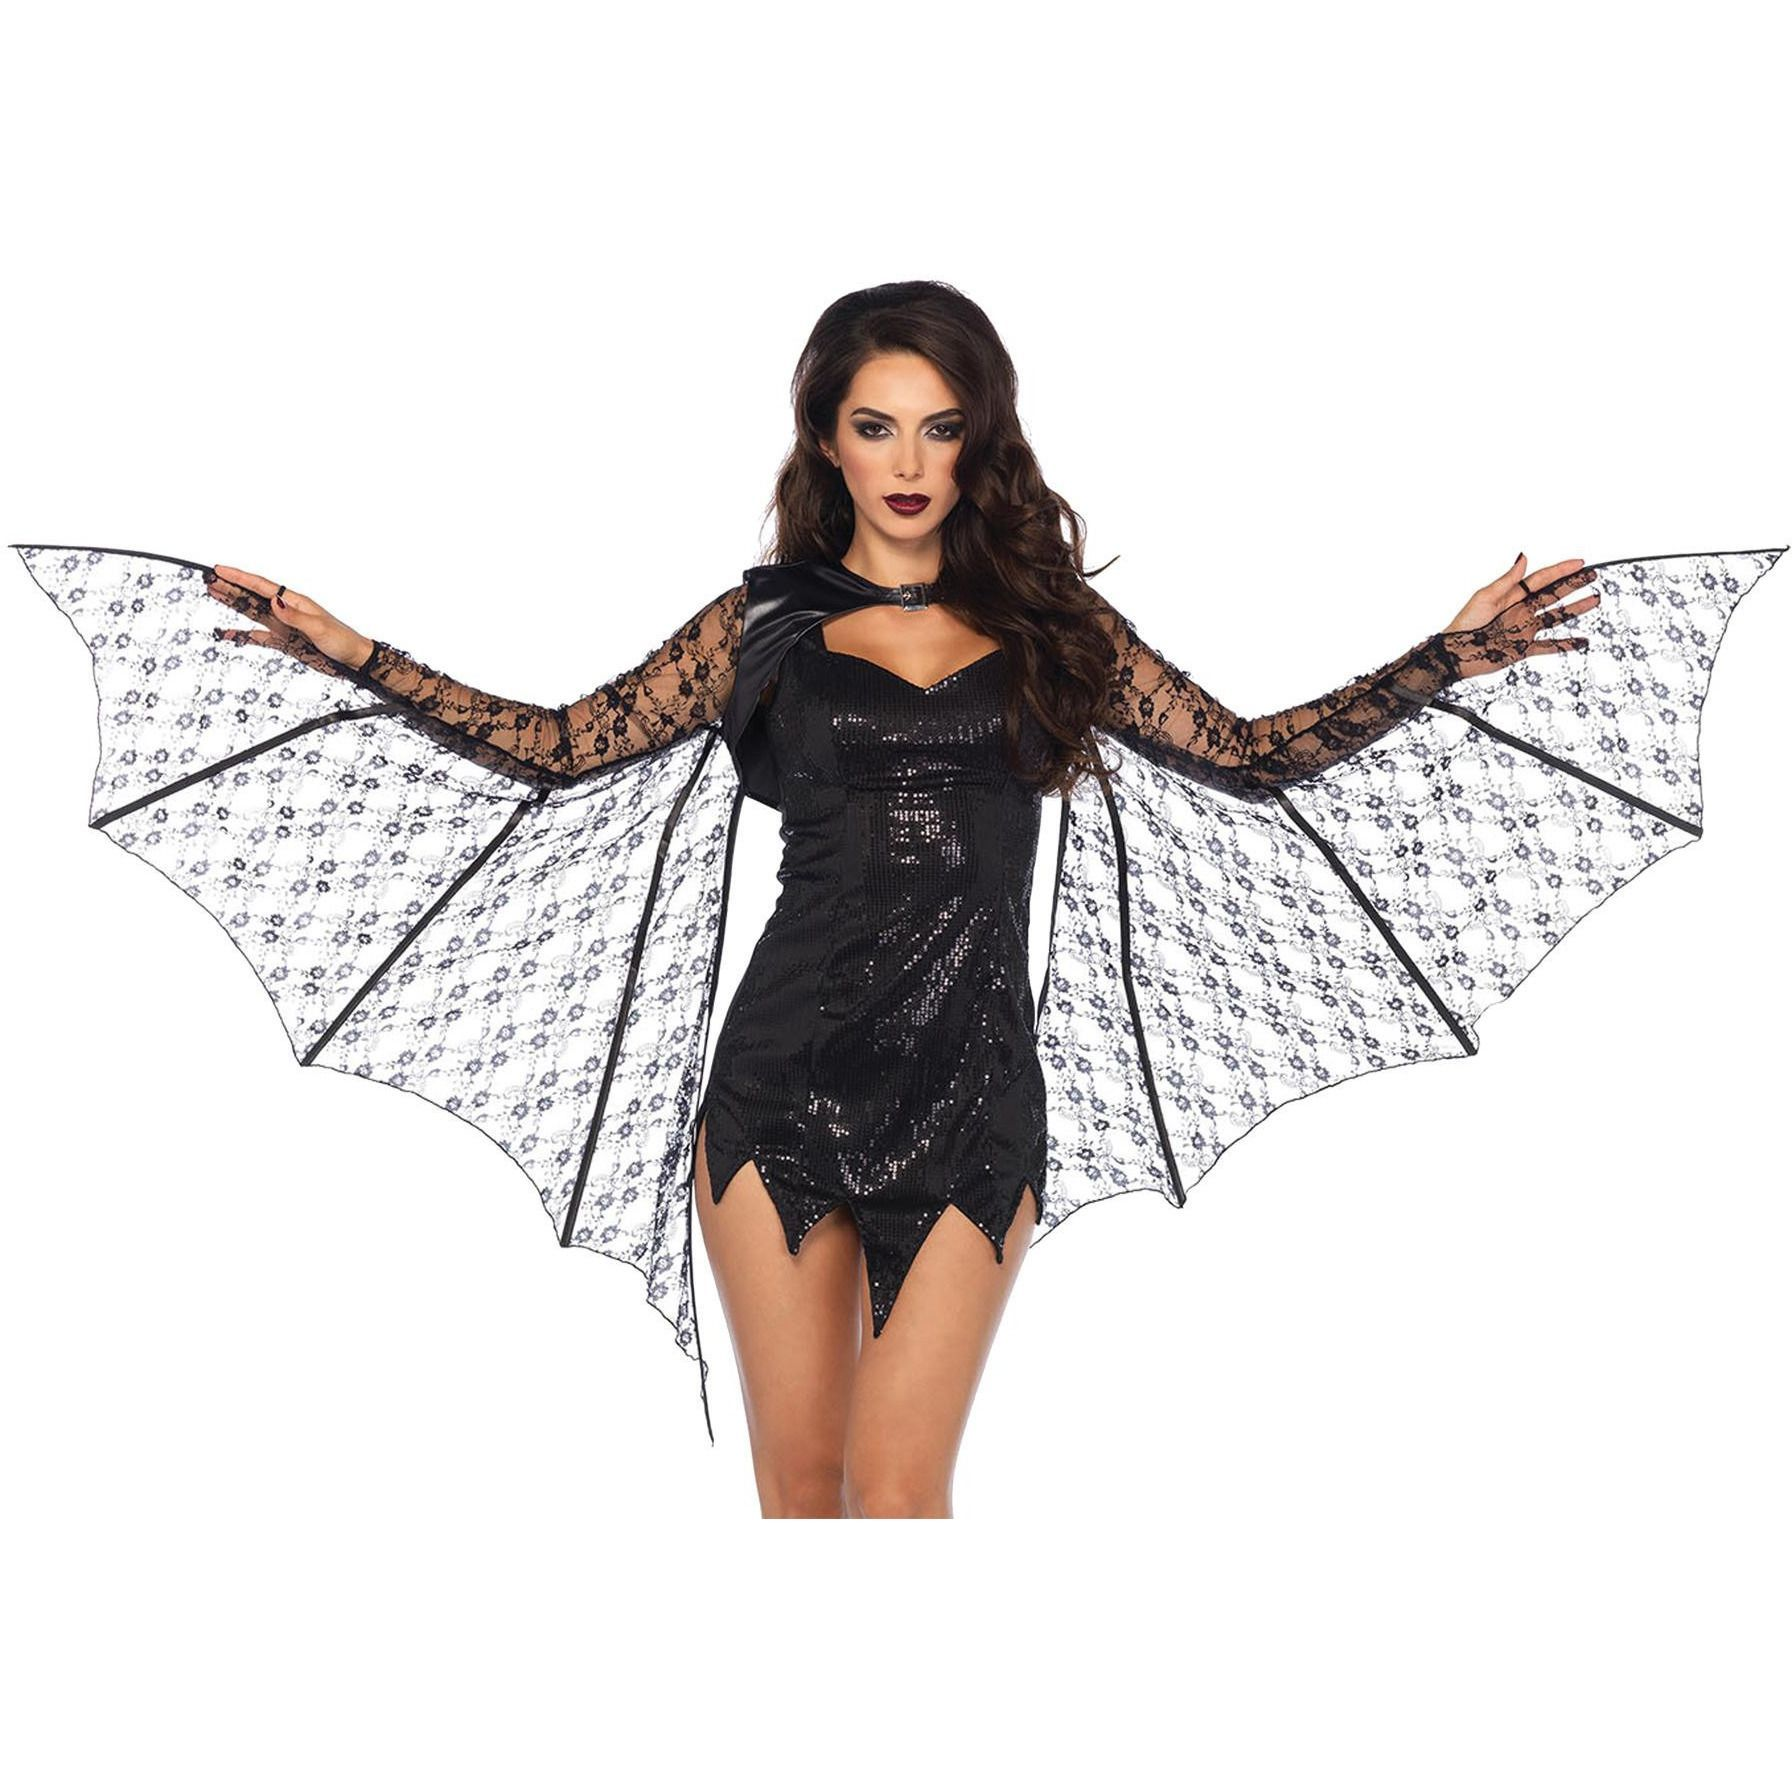 Shrug Lace Bat Wings | Products, Bat wings and Wings